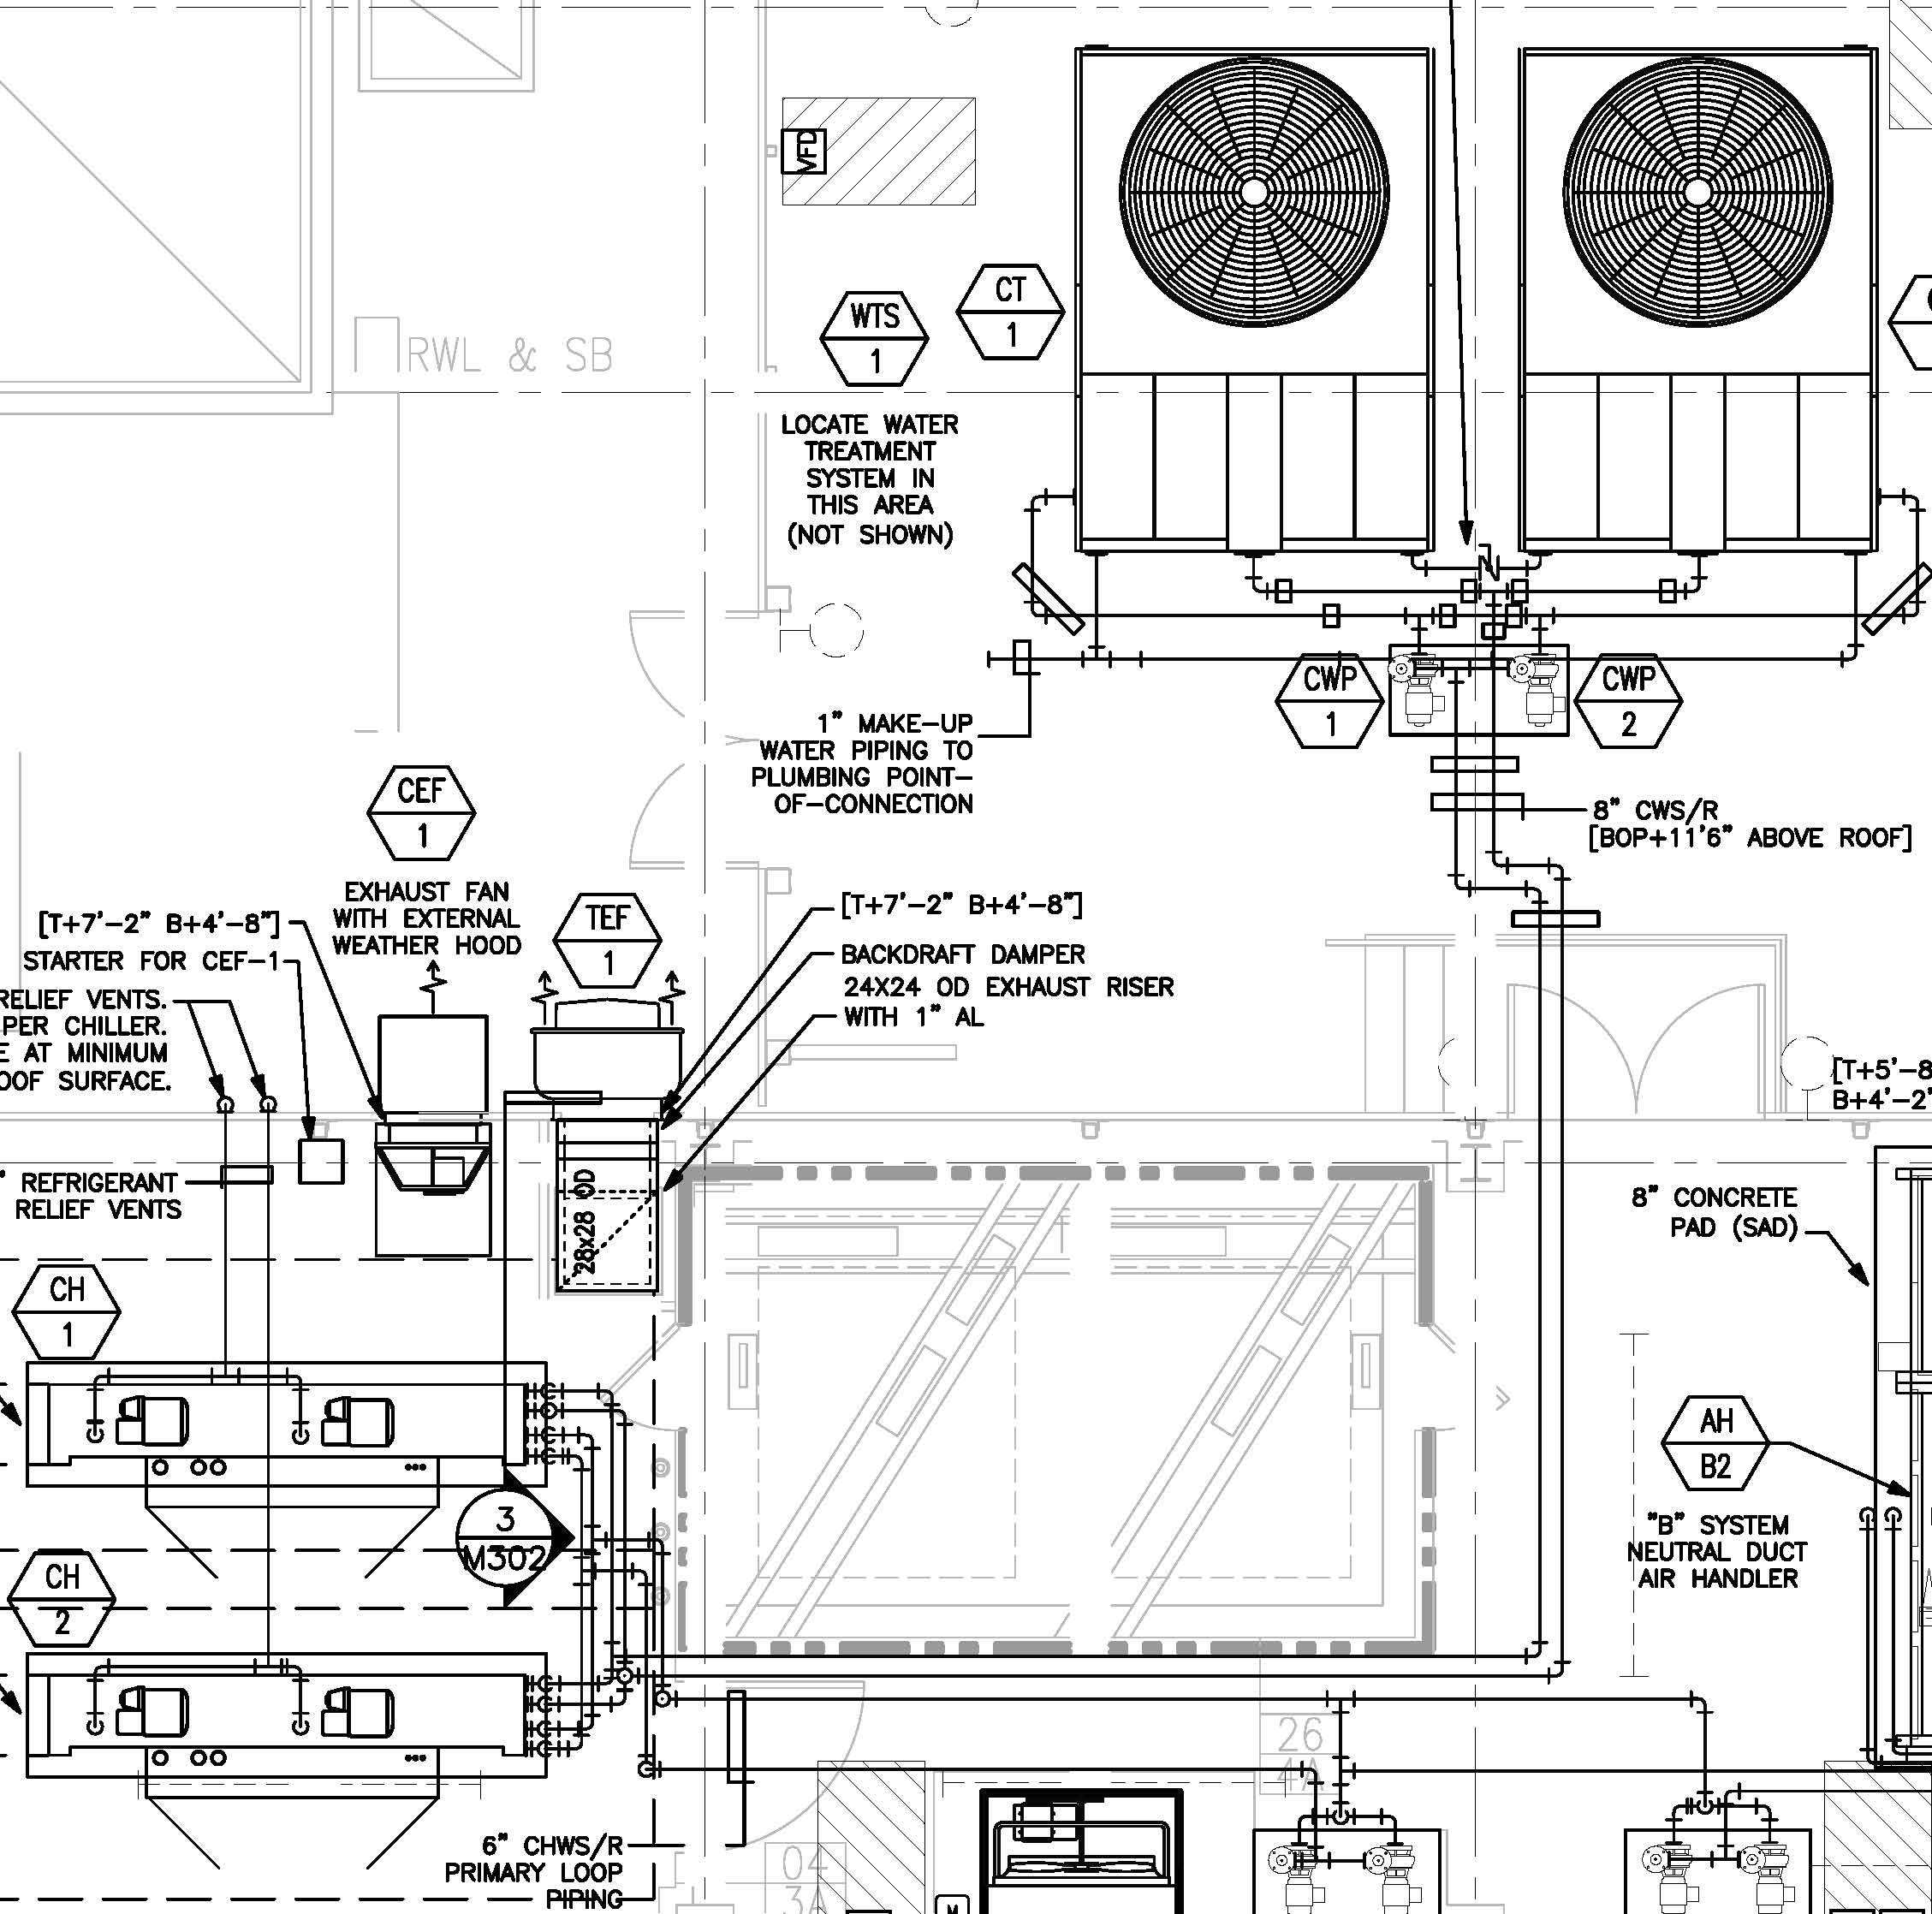 split unit wiring diagram Download-Wiring Diagram For A Ac Unit New Ac Unit Wiring Diagram Unique Split System Air Conditioner Wiring 9-l